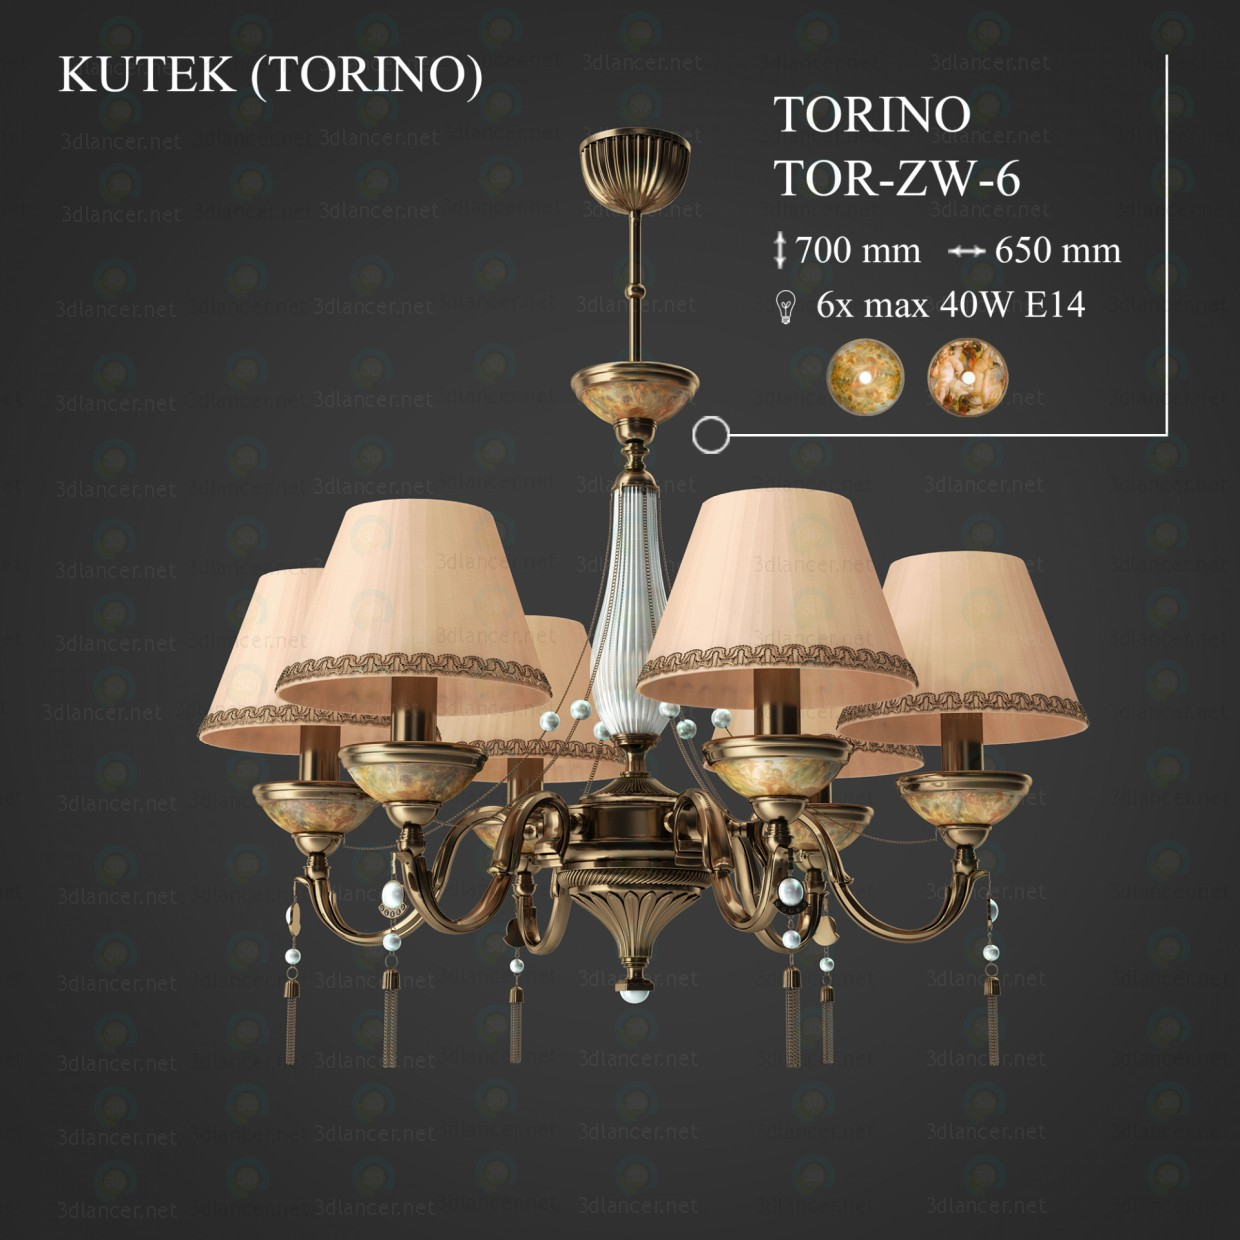 3d model Chandelier KUTEK (TORINO) TOR-ZW-6 in the style of ...